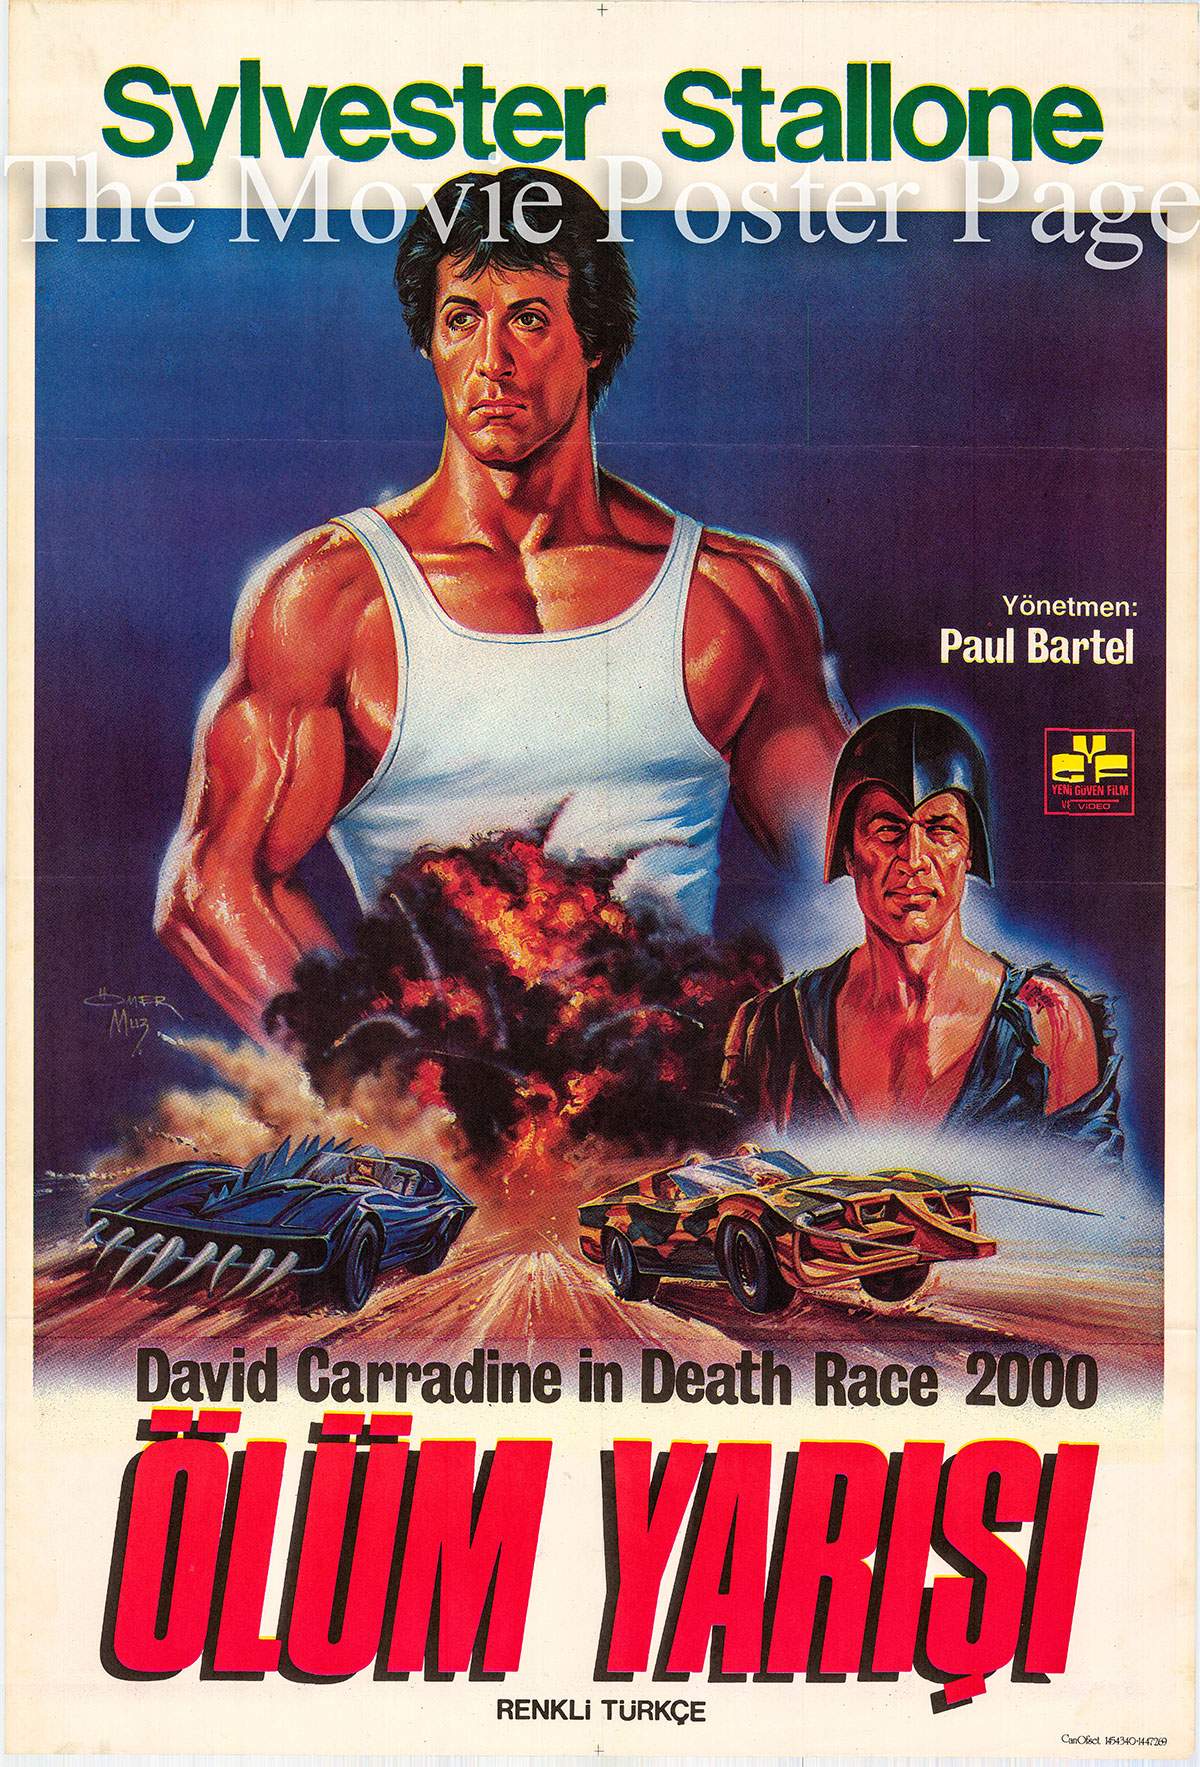 Pictured is a Turkish one-sheet promotional poster for the 1975 Paul Bartel film Death Race 2000 starring David Carradine.